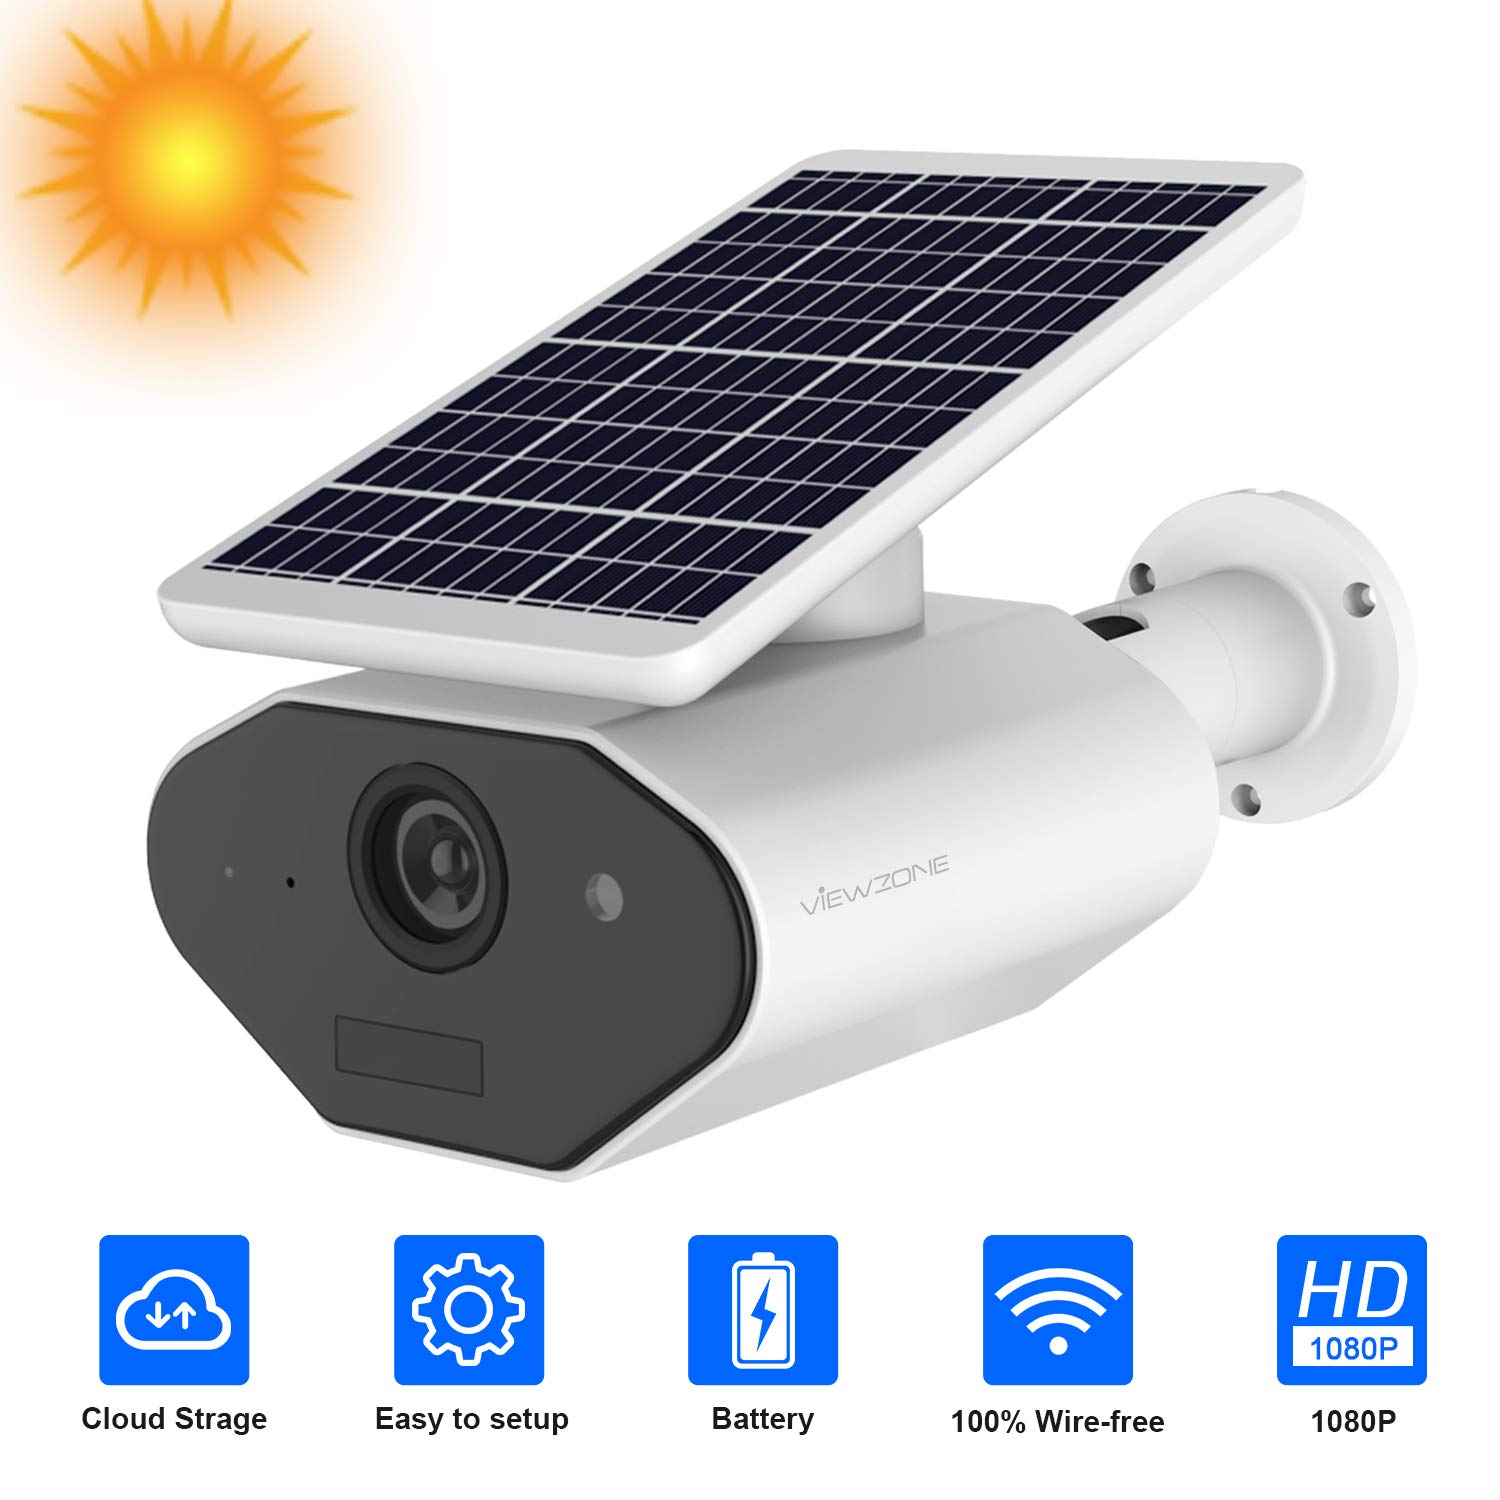 Wireless Battery Powered Security Camera Solar Powered Camera Outdoor 1080P Rechargeable Wire-Free Battery WiFi Camera for Home Security, 2 Way Audio Motion Detection,Cloud Storage, Work with Alexa by VIEWZONE